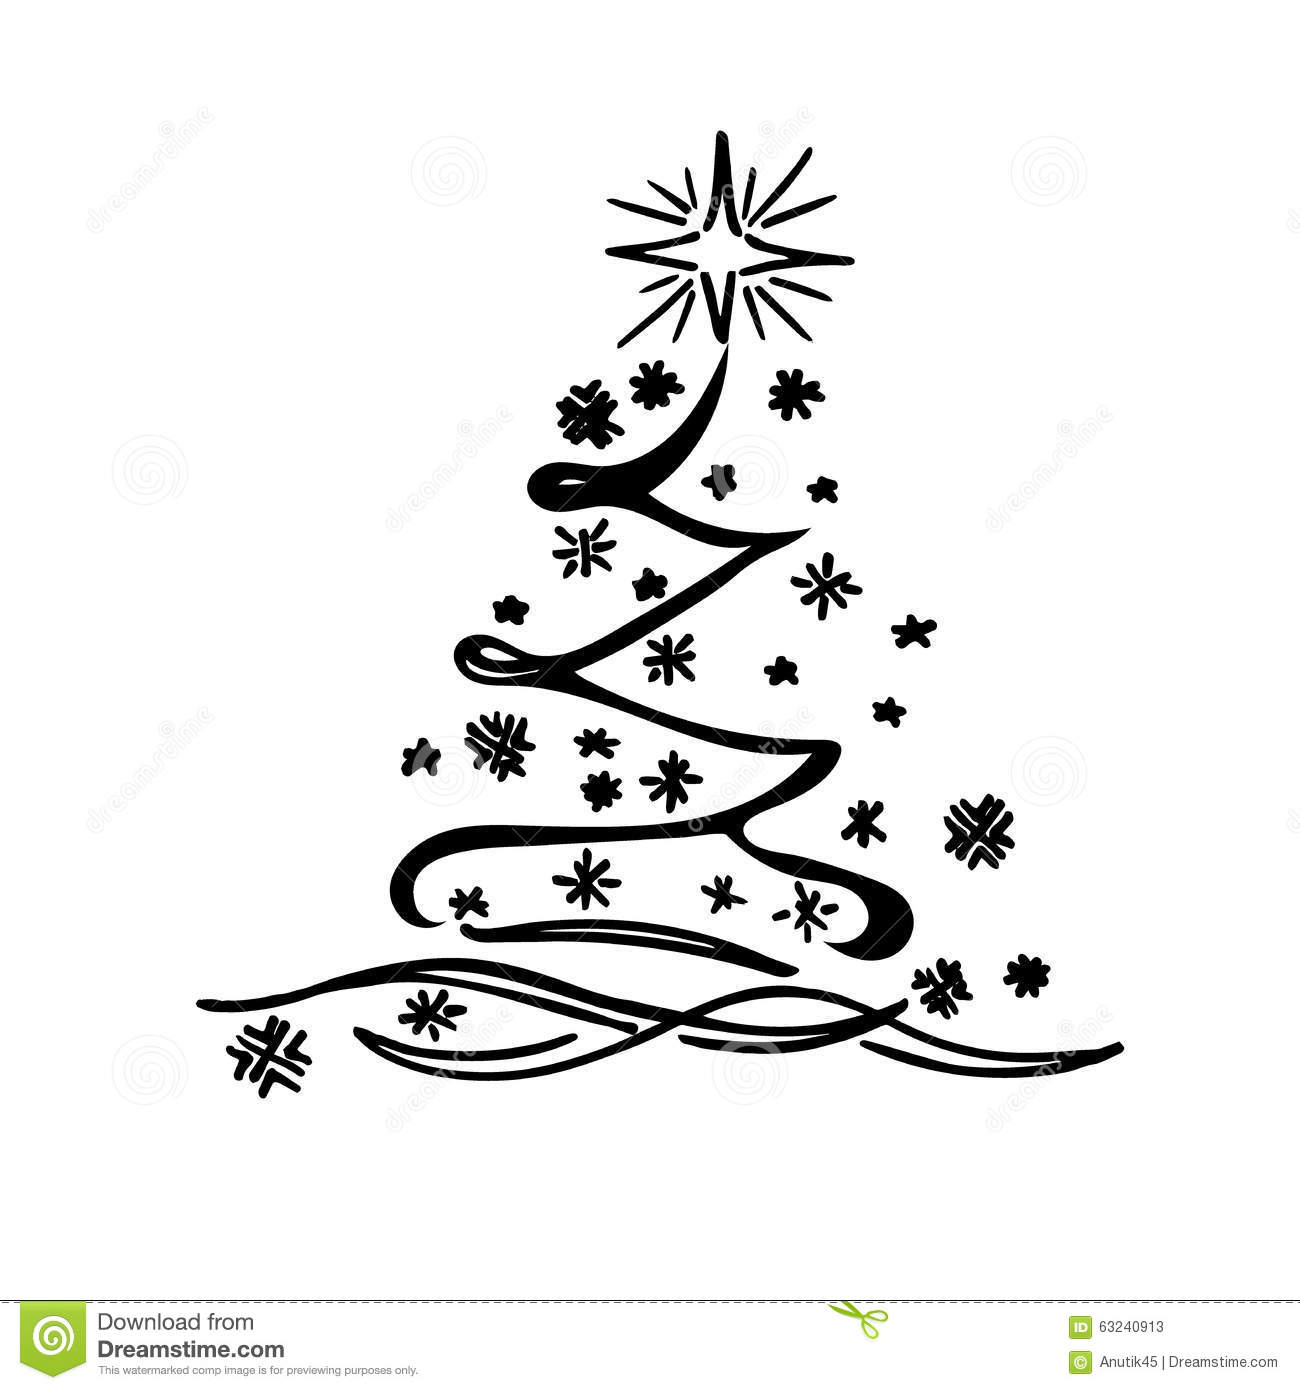 Christmas Tree Sketch Doodle Vector Illustration Stock